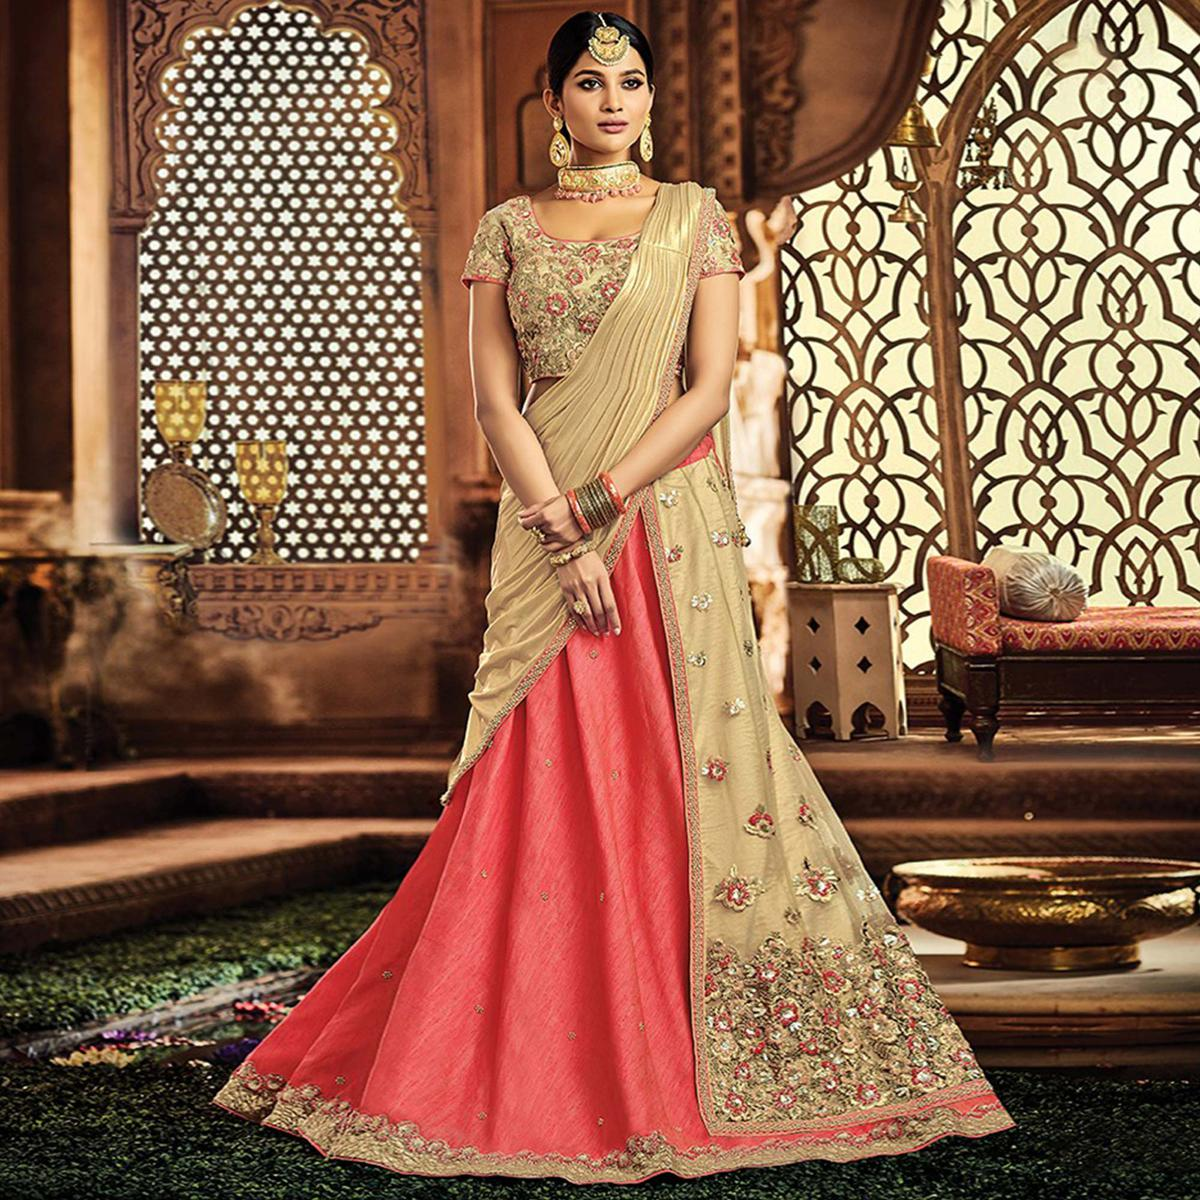 Intricate Peach-Beige Designer Embroidered Wedding Wear Raw Silk-Net Lehenga Saree